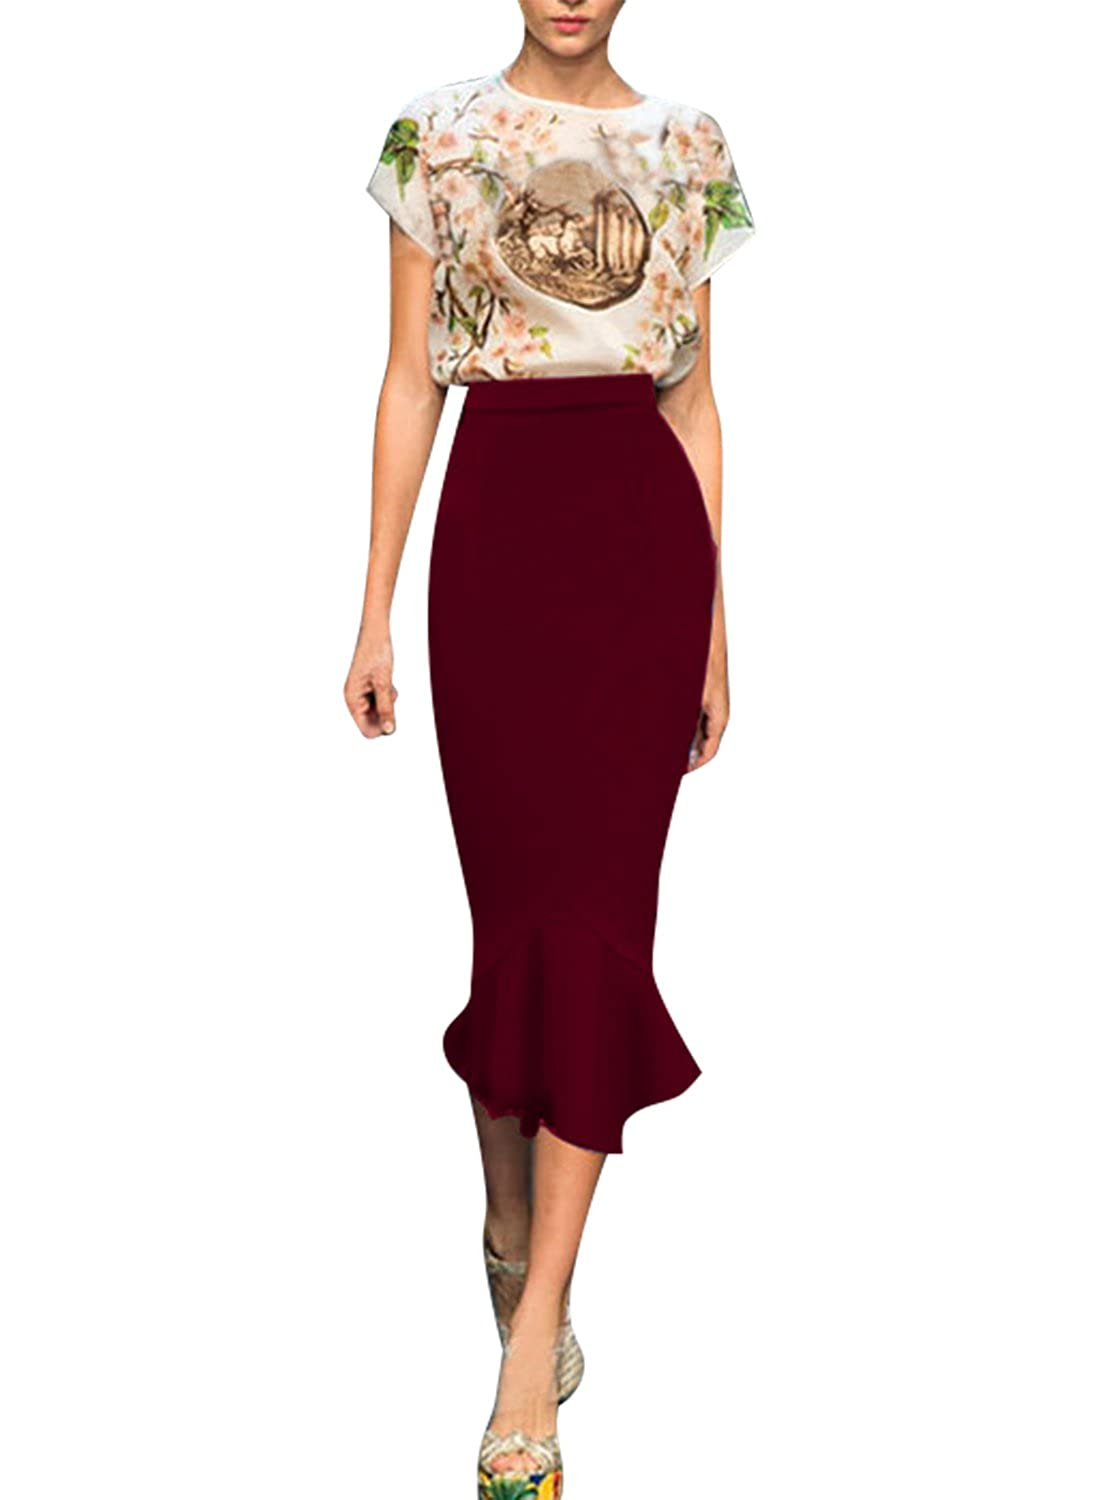 1930s Style Skirts : Midi Skirts, Tea Length, Pleated Viwenni® Womens Vintage High Waist Wear to Work Bodycon Mermaid Pencil Skirt $19.99 AT vintagedancer.com